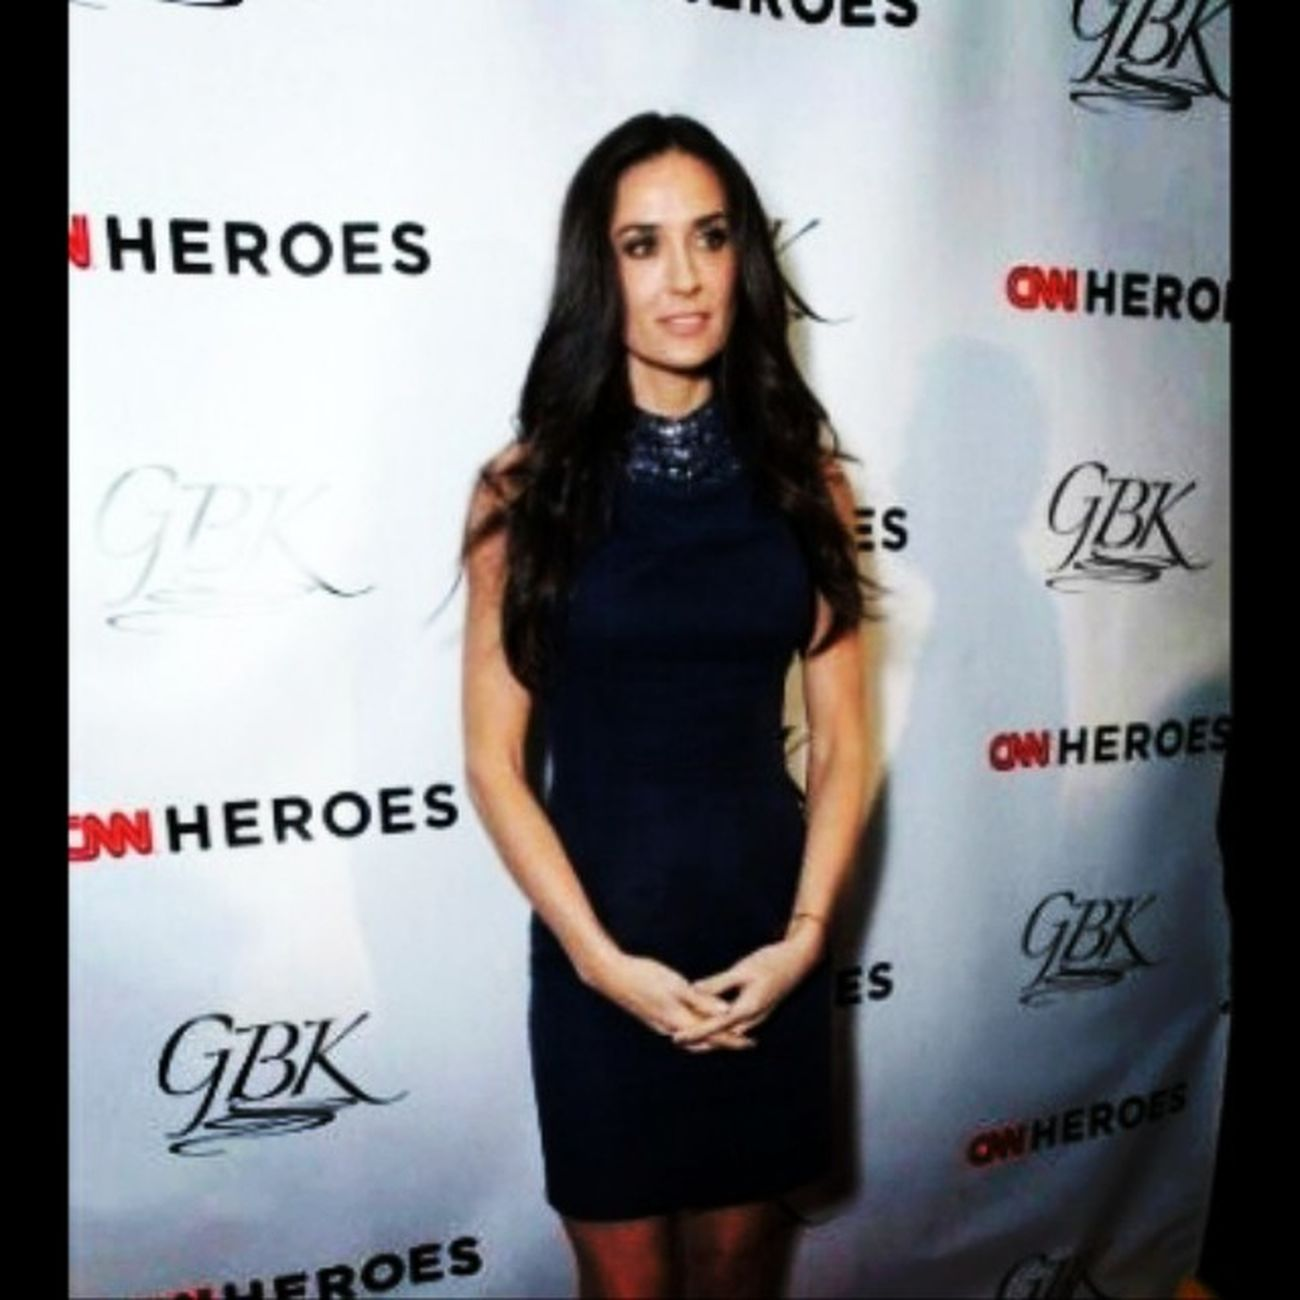 TBT  Demimoore Gbkproductions Yrflifestyle CNN Heroes AFewGoodMen Ghost GIjane Mrbrooks